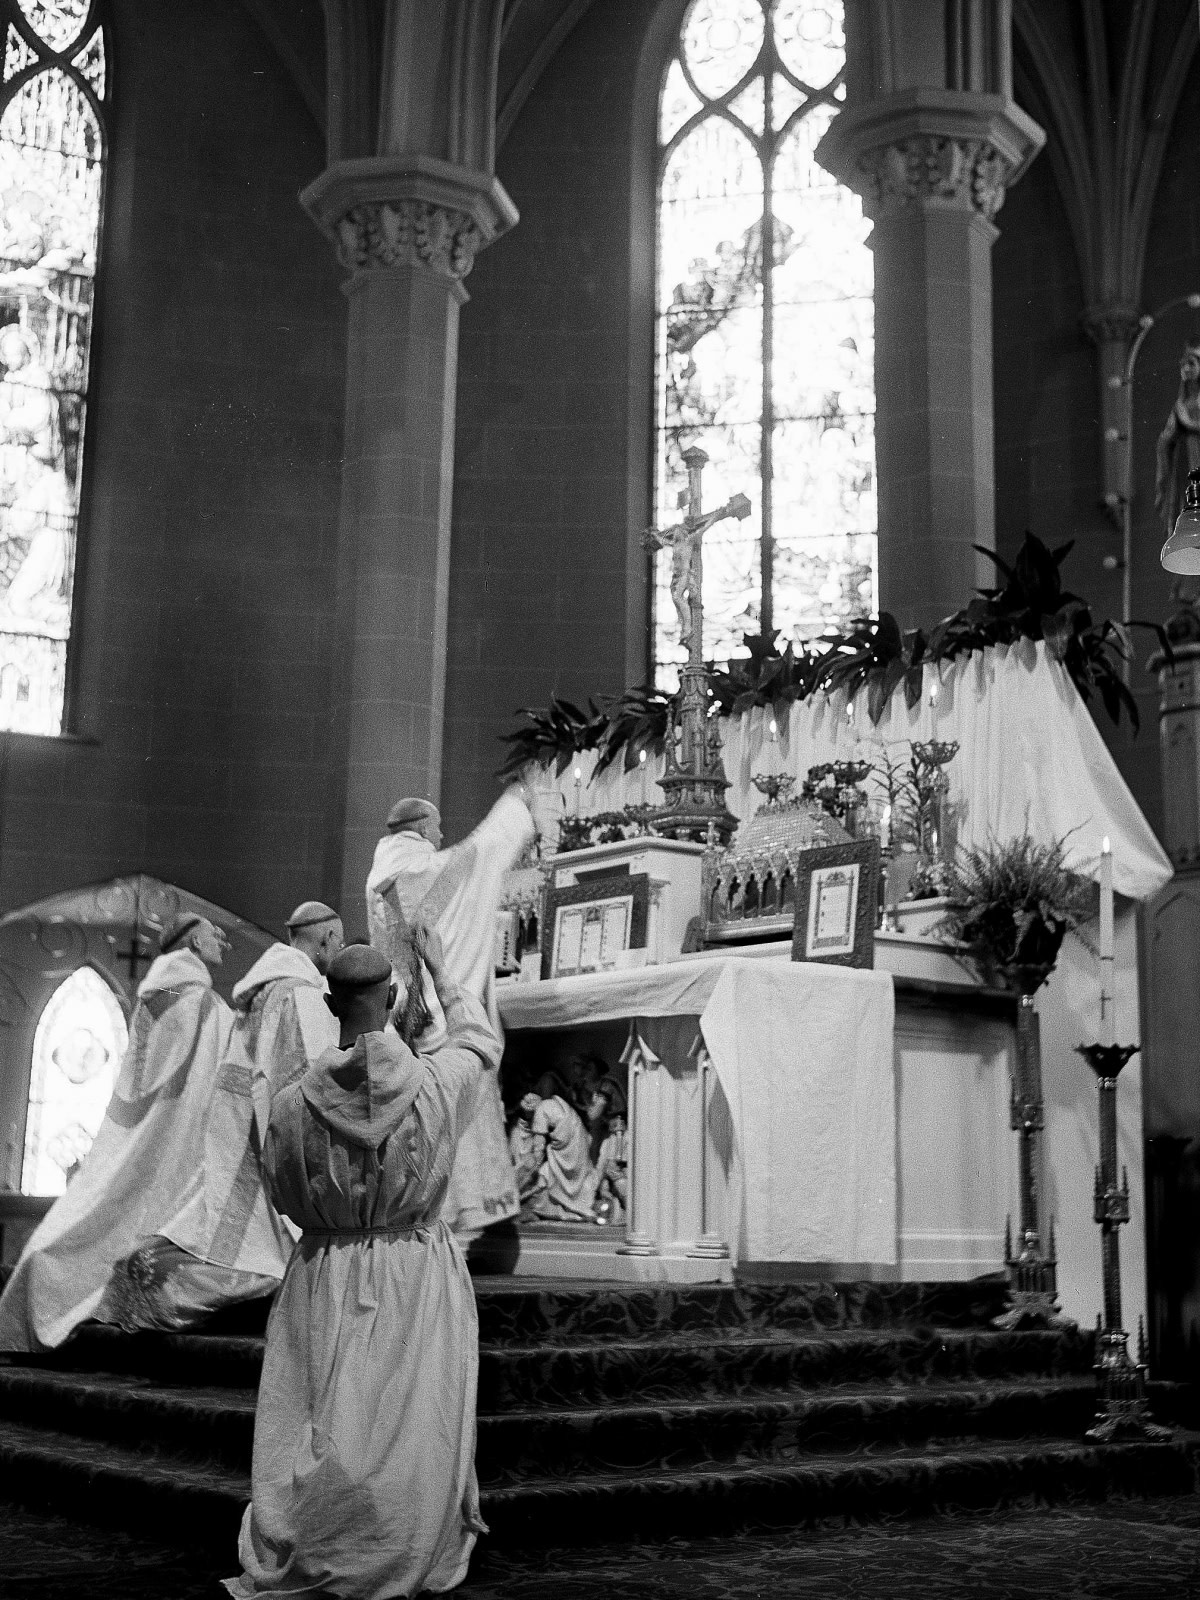 web2-photo-of-the-day-thomas-merton-first-mass-ap_523601376629-hr-littell-ap-archives